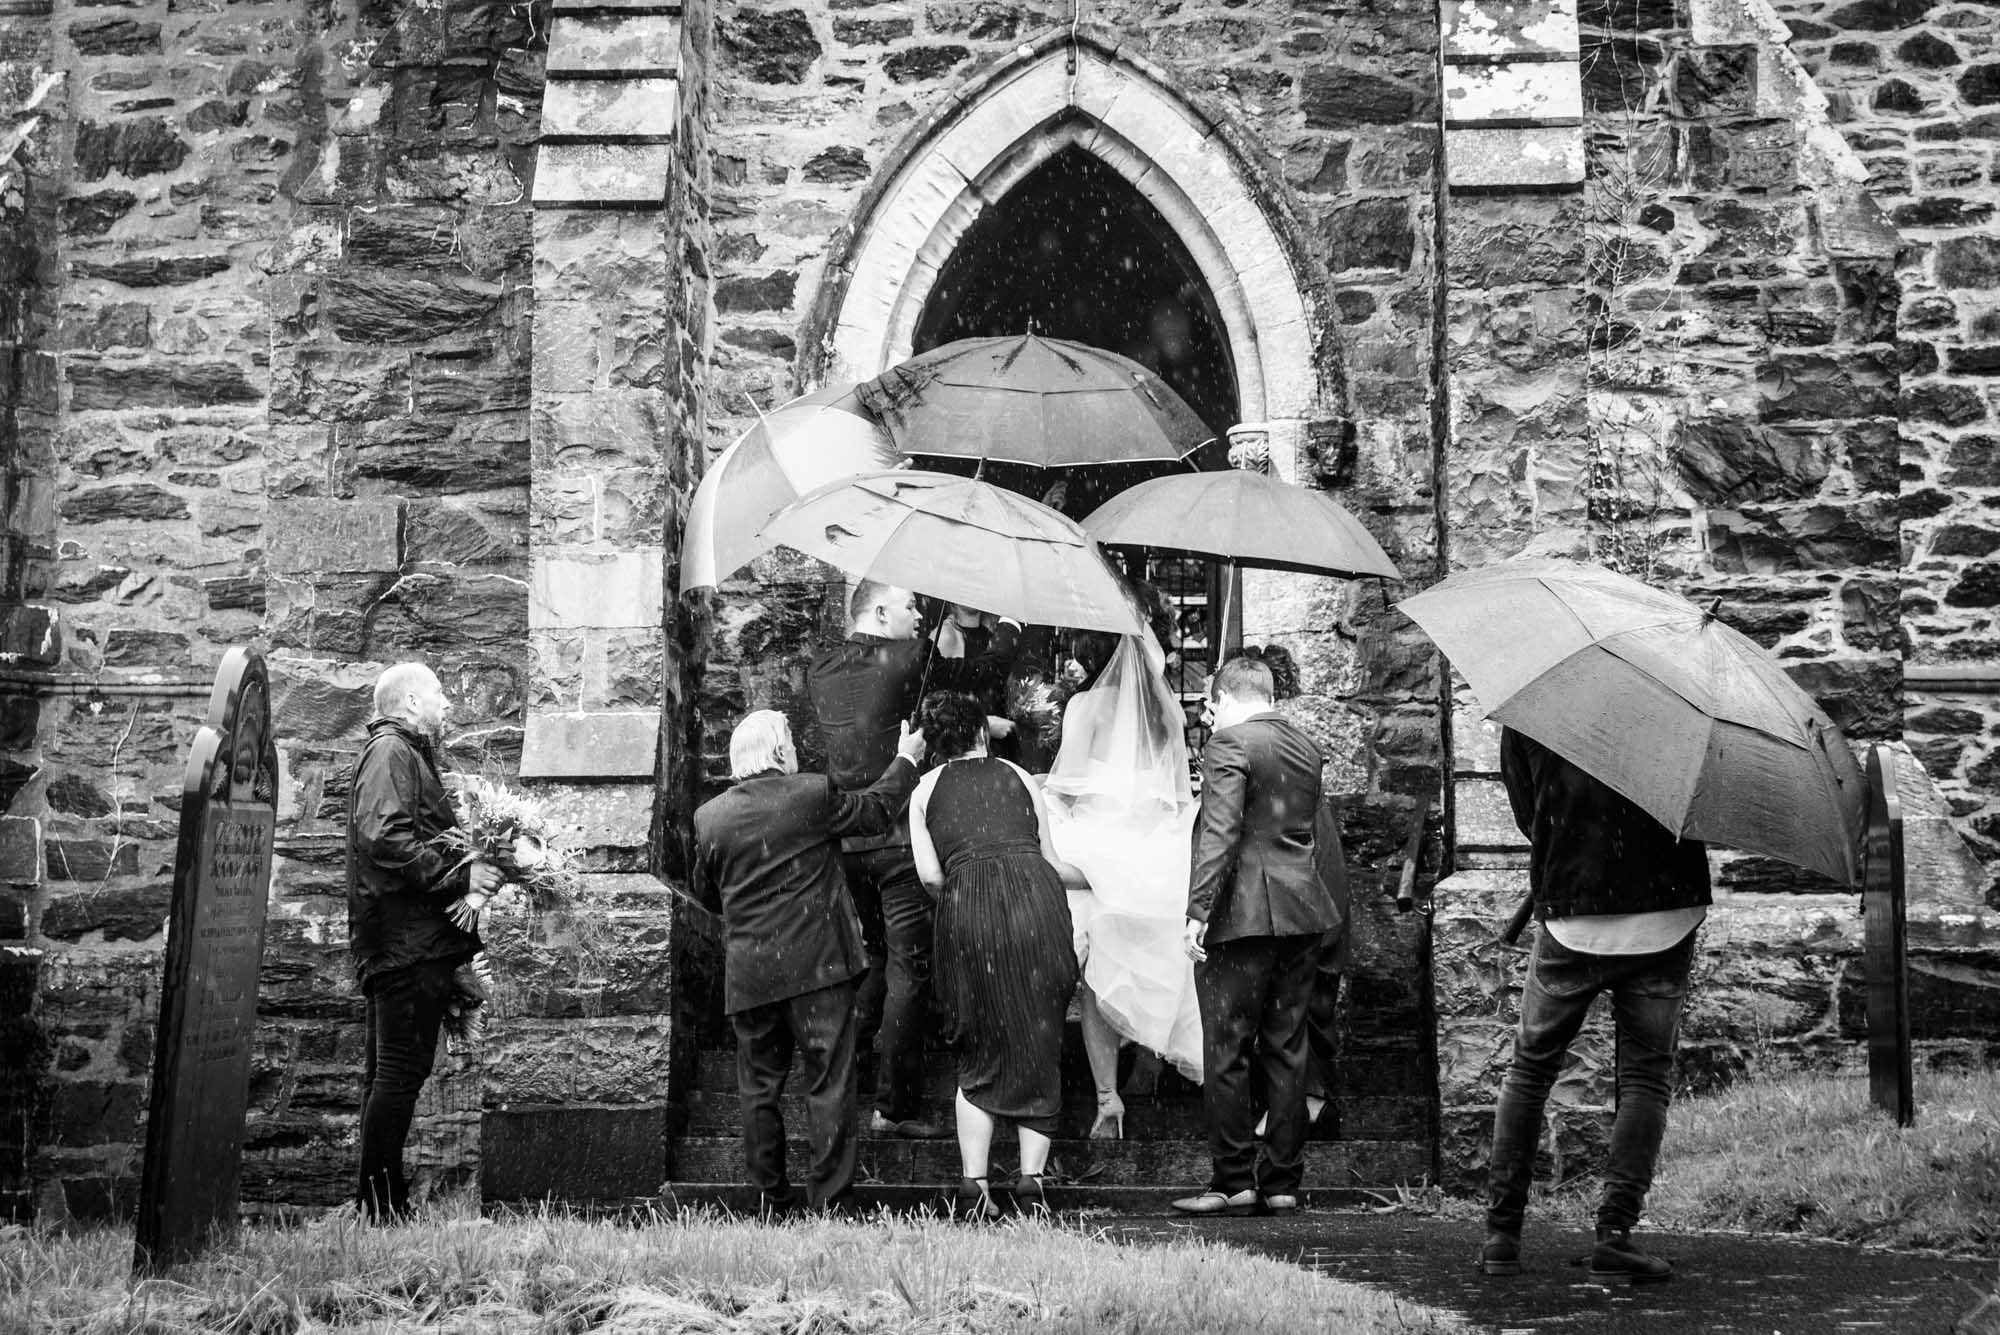 Arriving in the pouring rain at st mary's church in Llanfairpwllgwyngyll